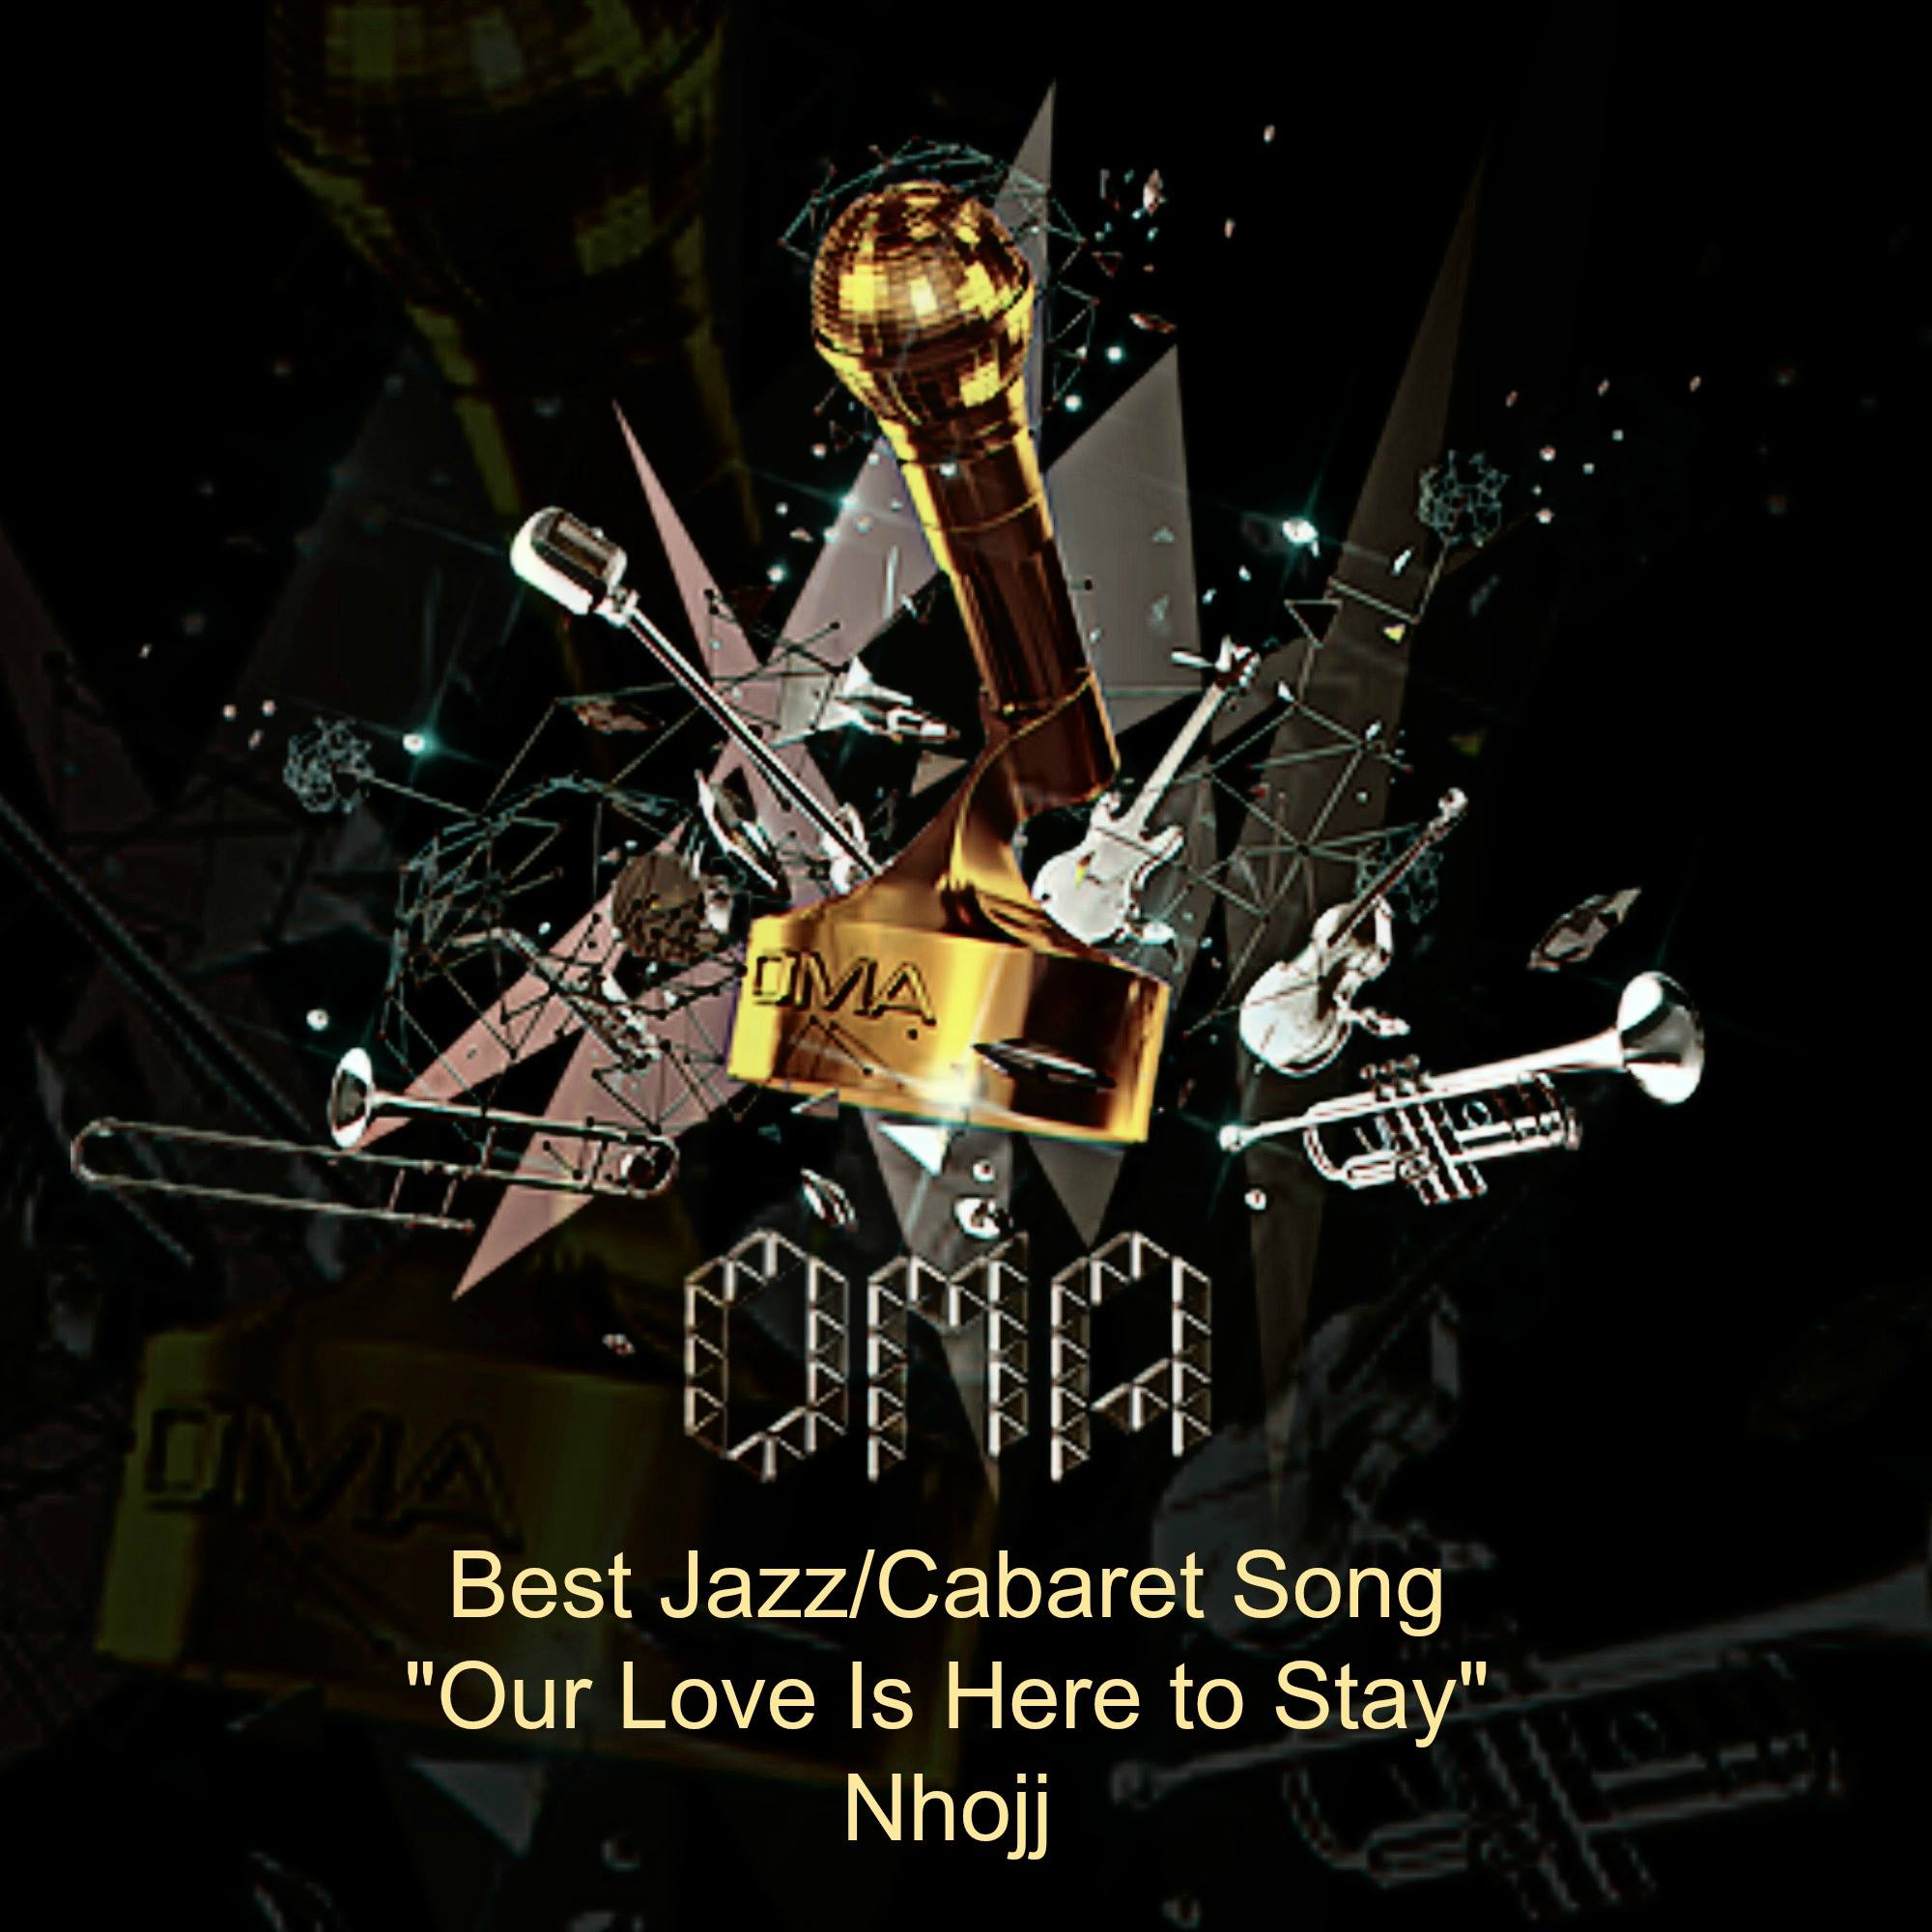 outmusic_award_jazz_song_of_the_year_nhojj